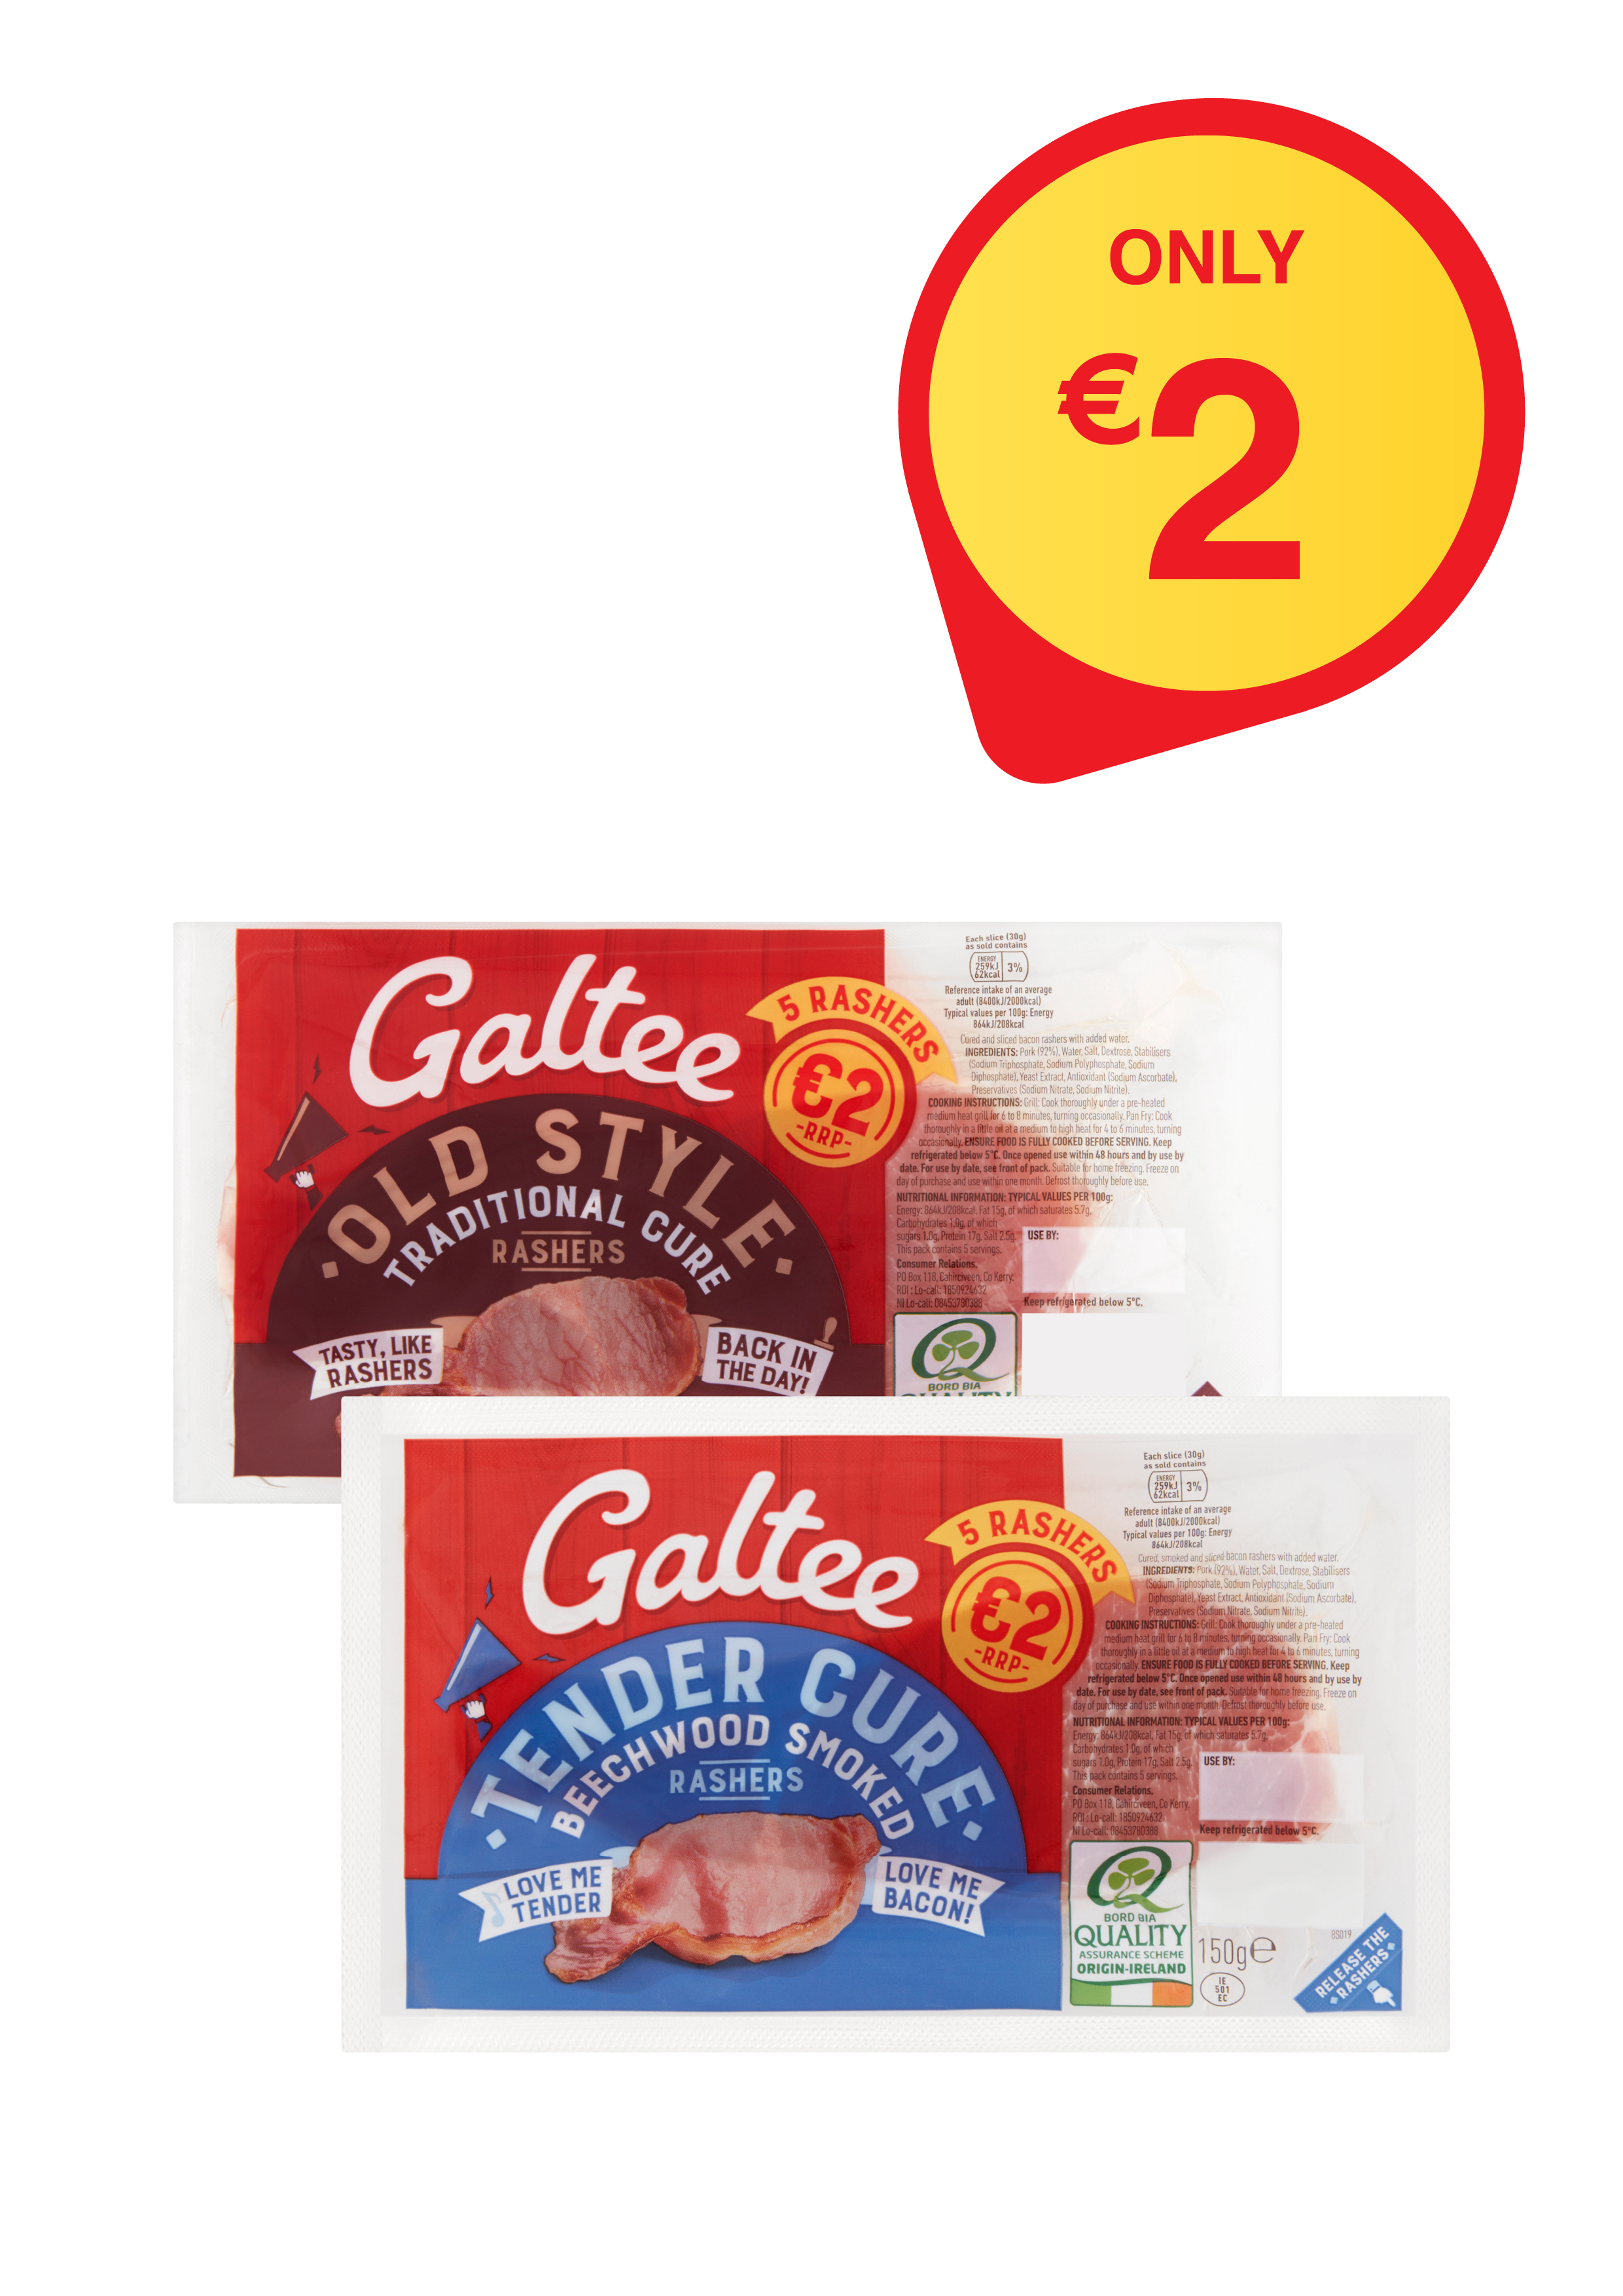 Spar Ireland Great Meal Deals Competitions Home